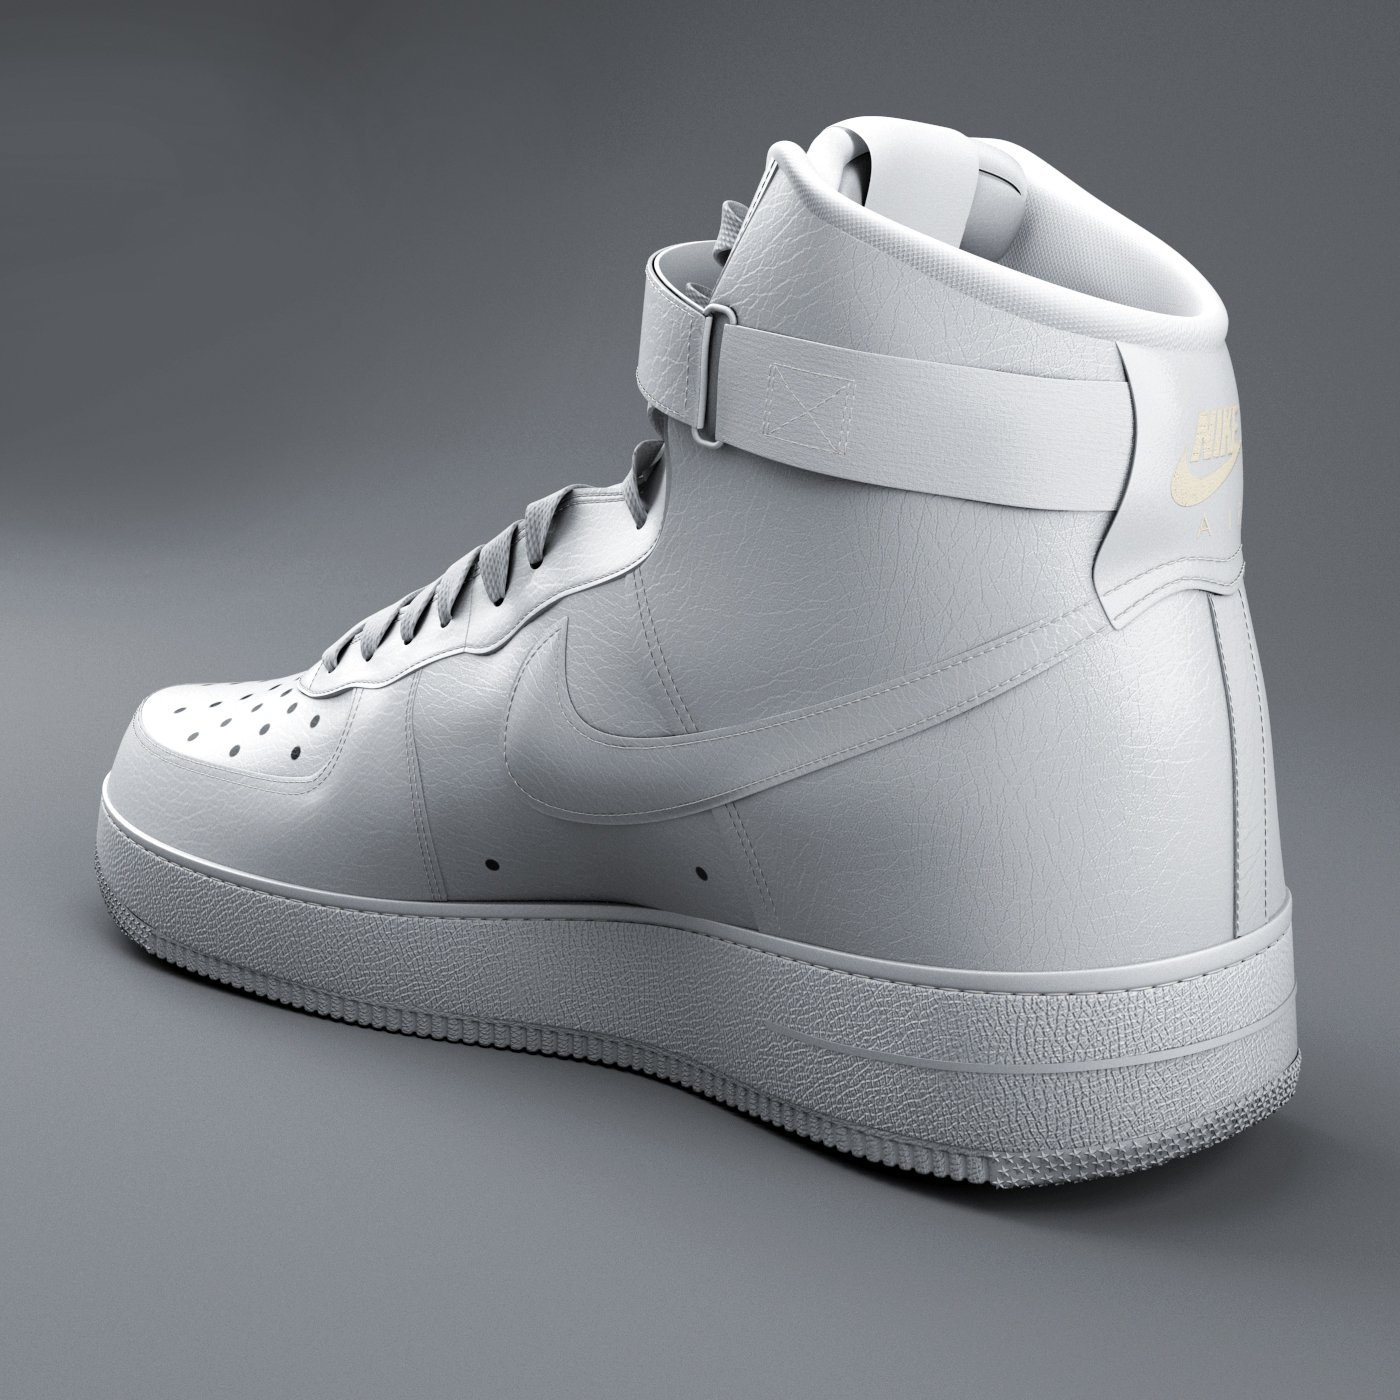 577144c4 Nike Air Force 01. Remove Bookmark Bookmark This Item